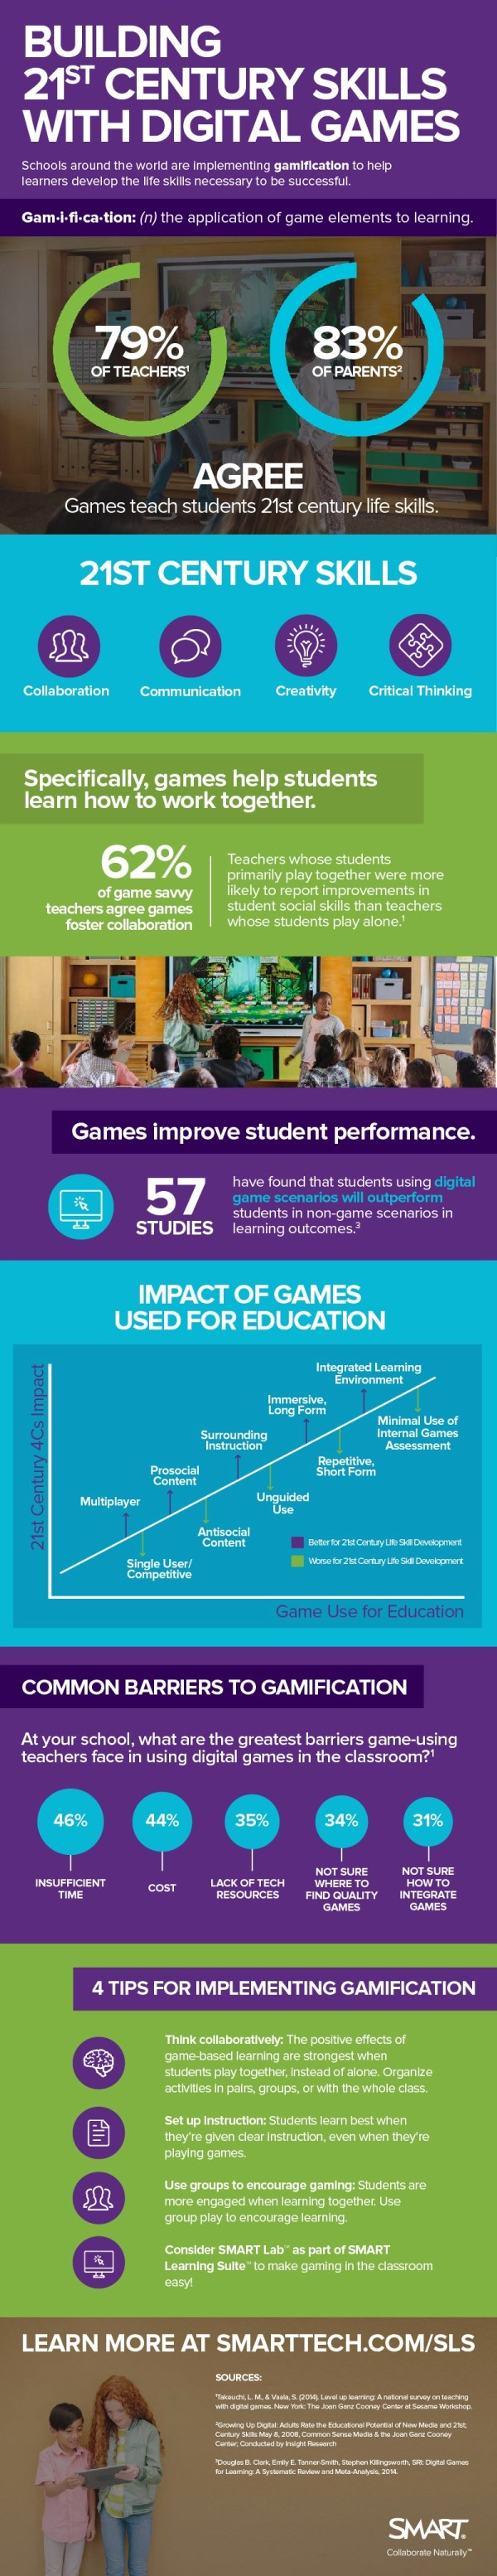 Building 21st Century Skills With Digital Games